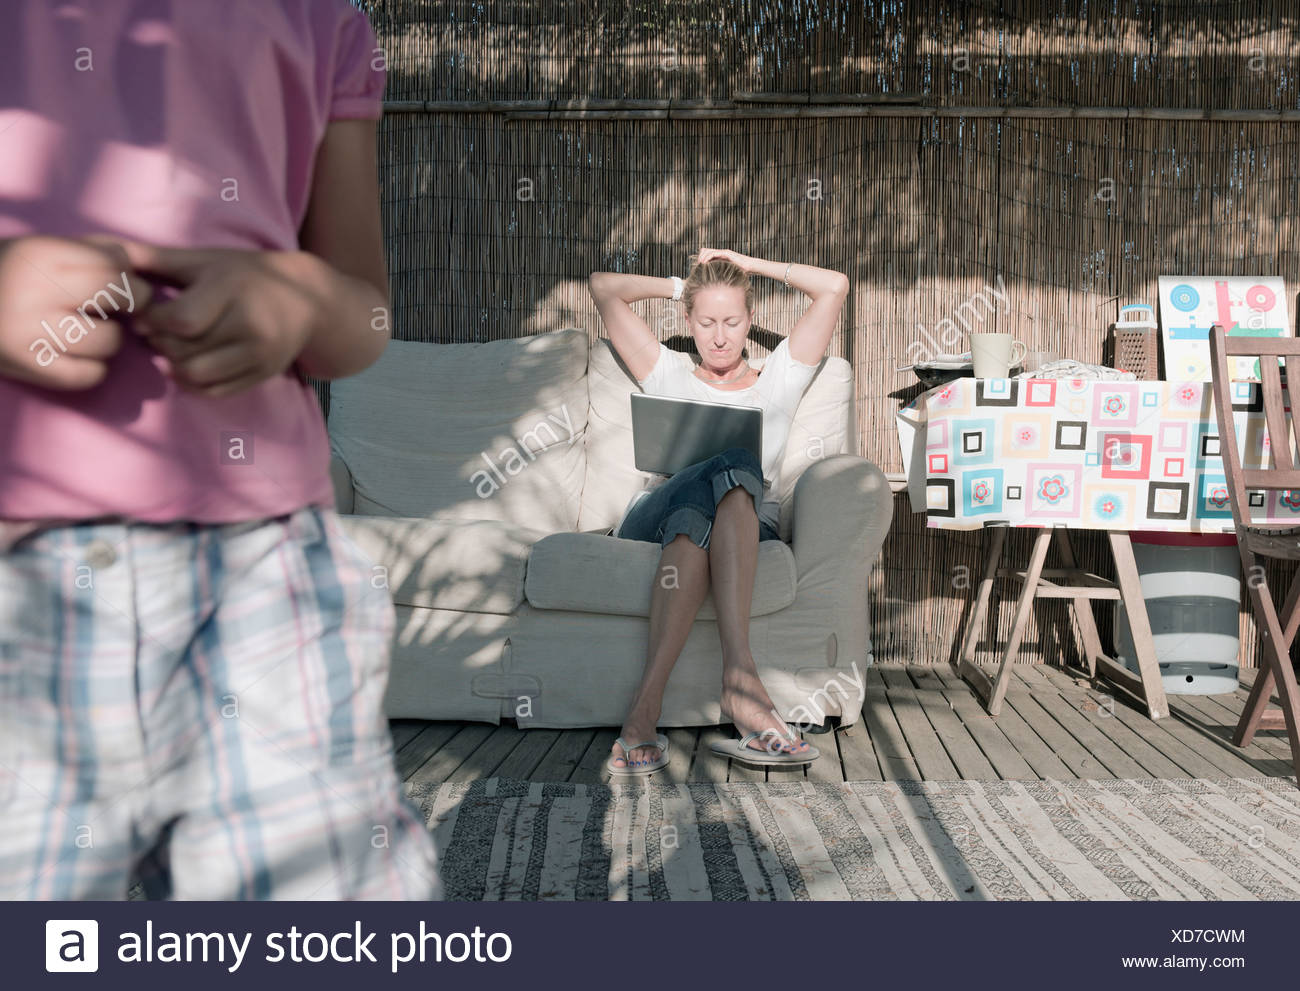 A Woman Sits On A Couch With Her Son In The Foreground; Tarifa, Cadiz, Andalusia, Spain - Stock Image